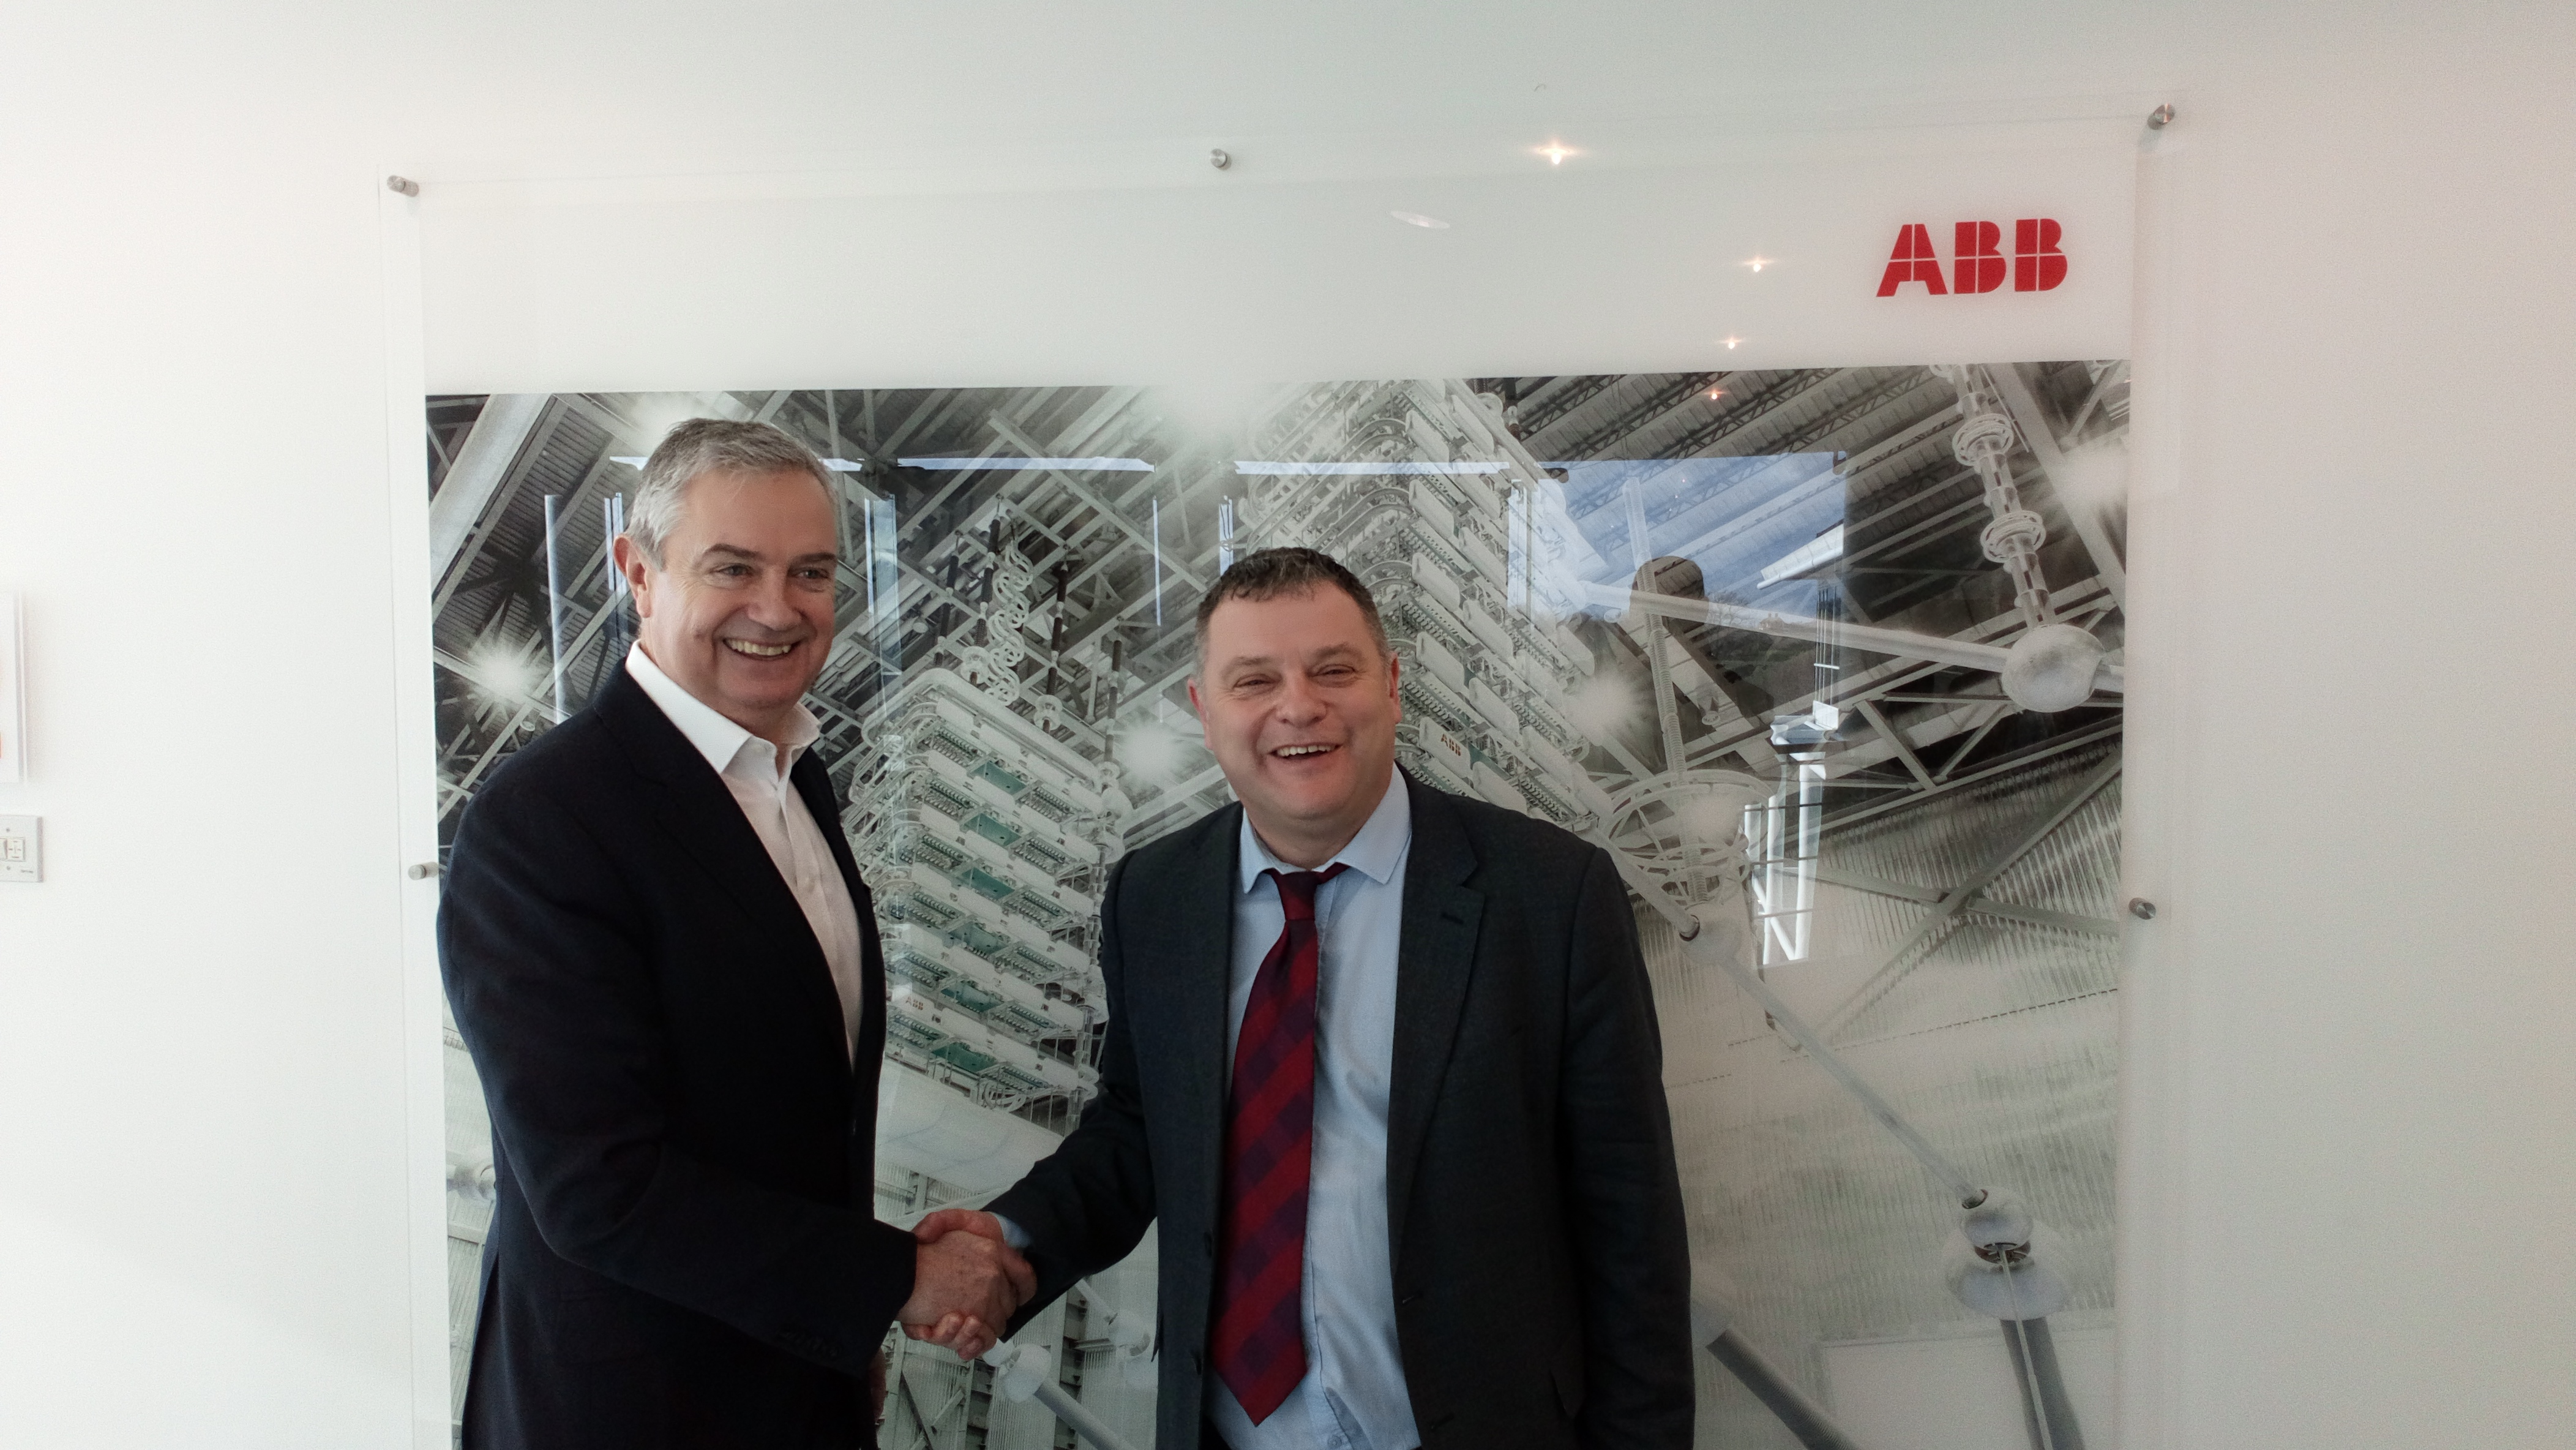 Mike with Ian Funnell, CEO of ABB